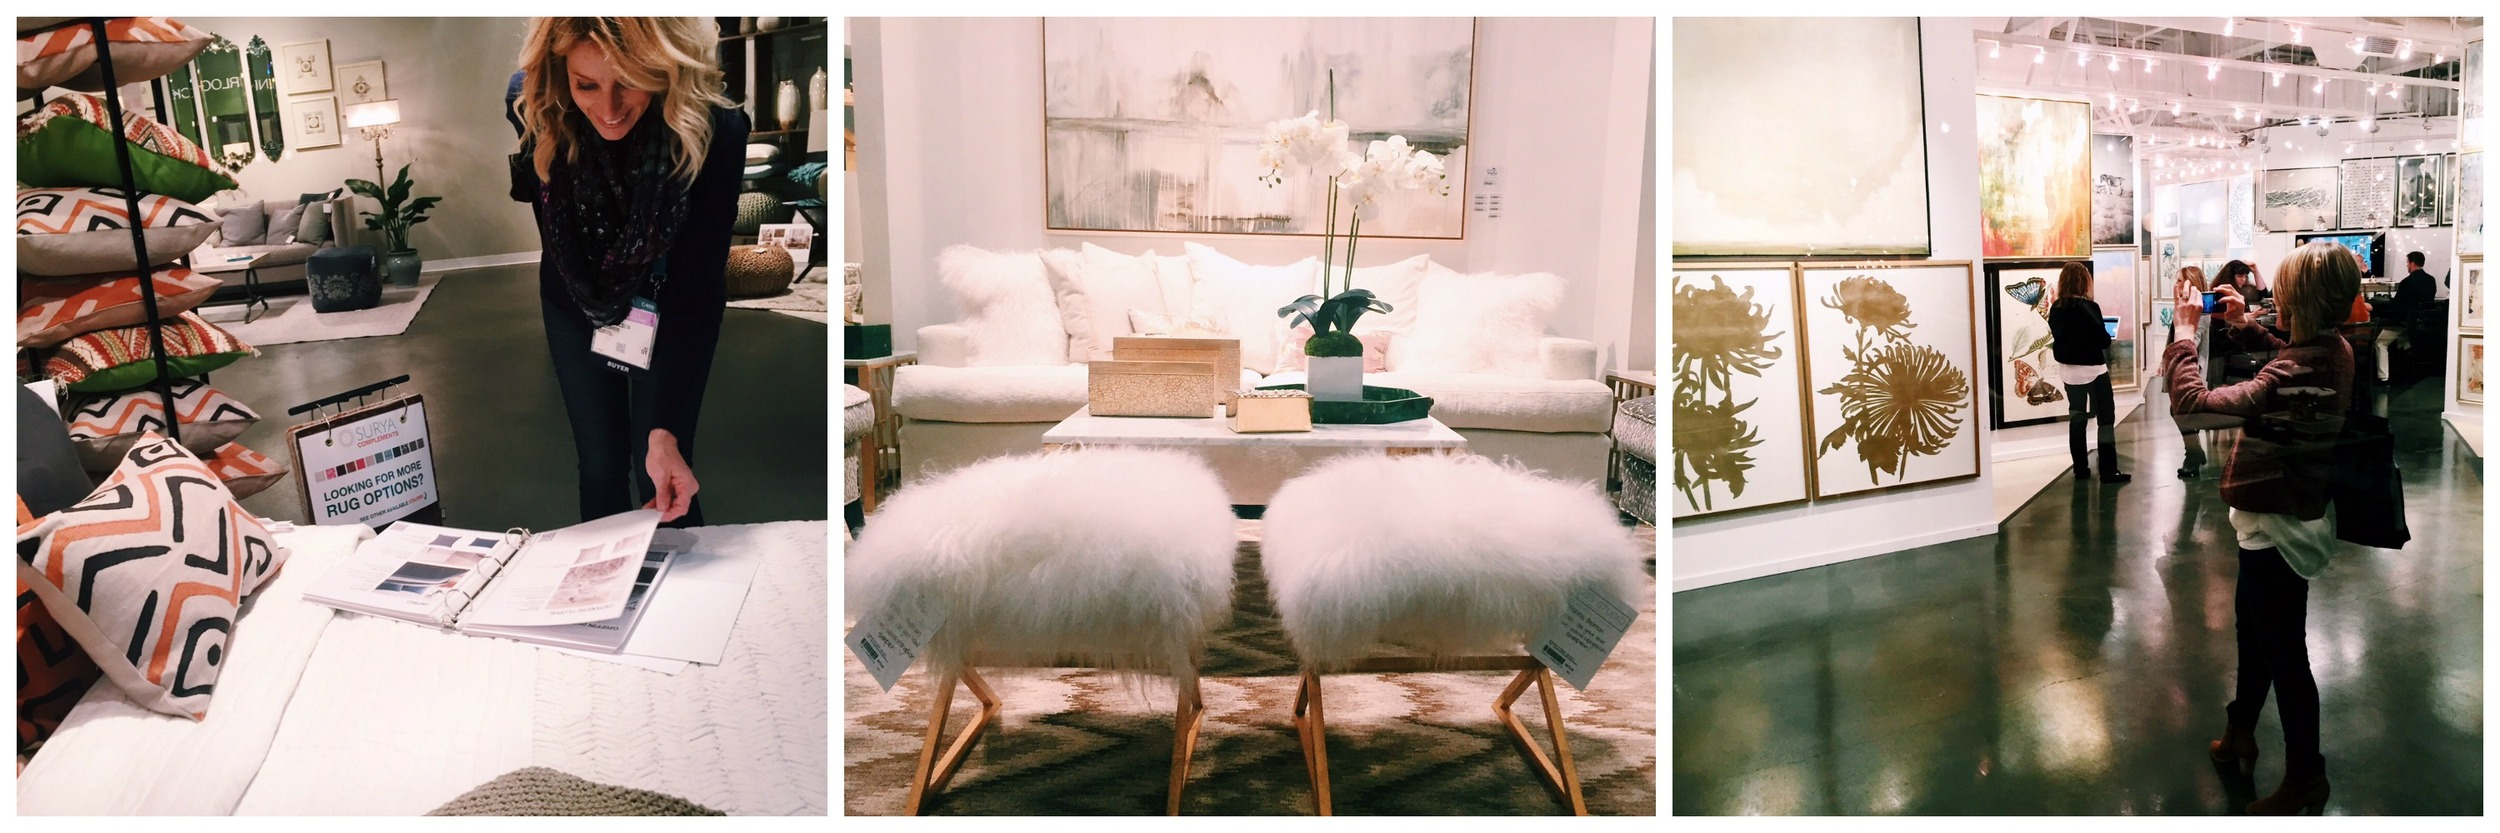 Liv Showroom owners Tonya Olsen and Deboni Sacre have just returned from Las Vegas Furniture Market with the latest in furniture, home decor and accessories. Watch for many exciting changes coming your way!